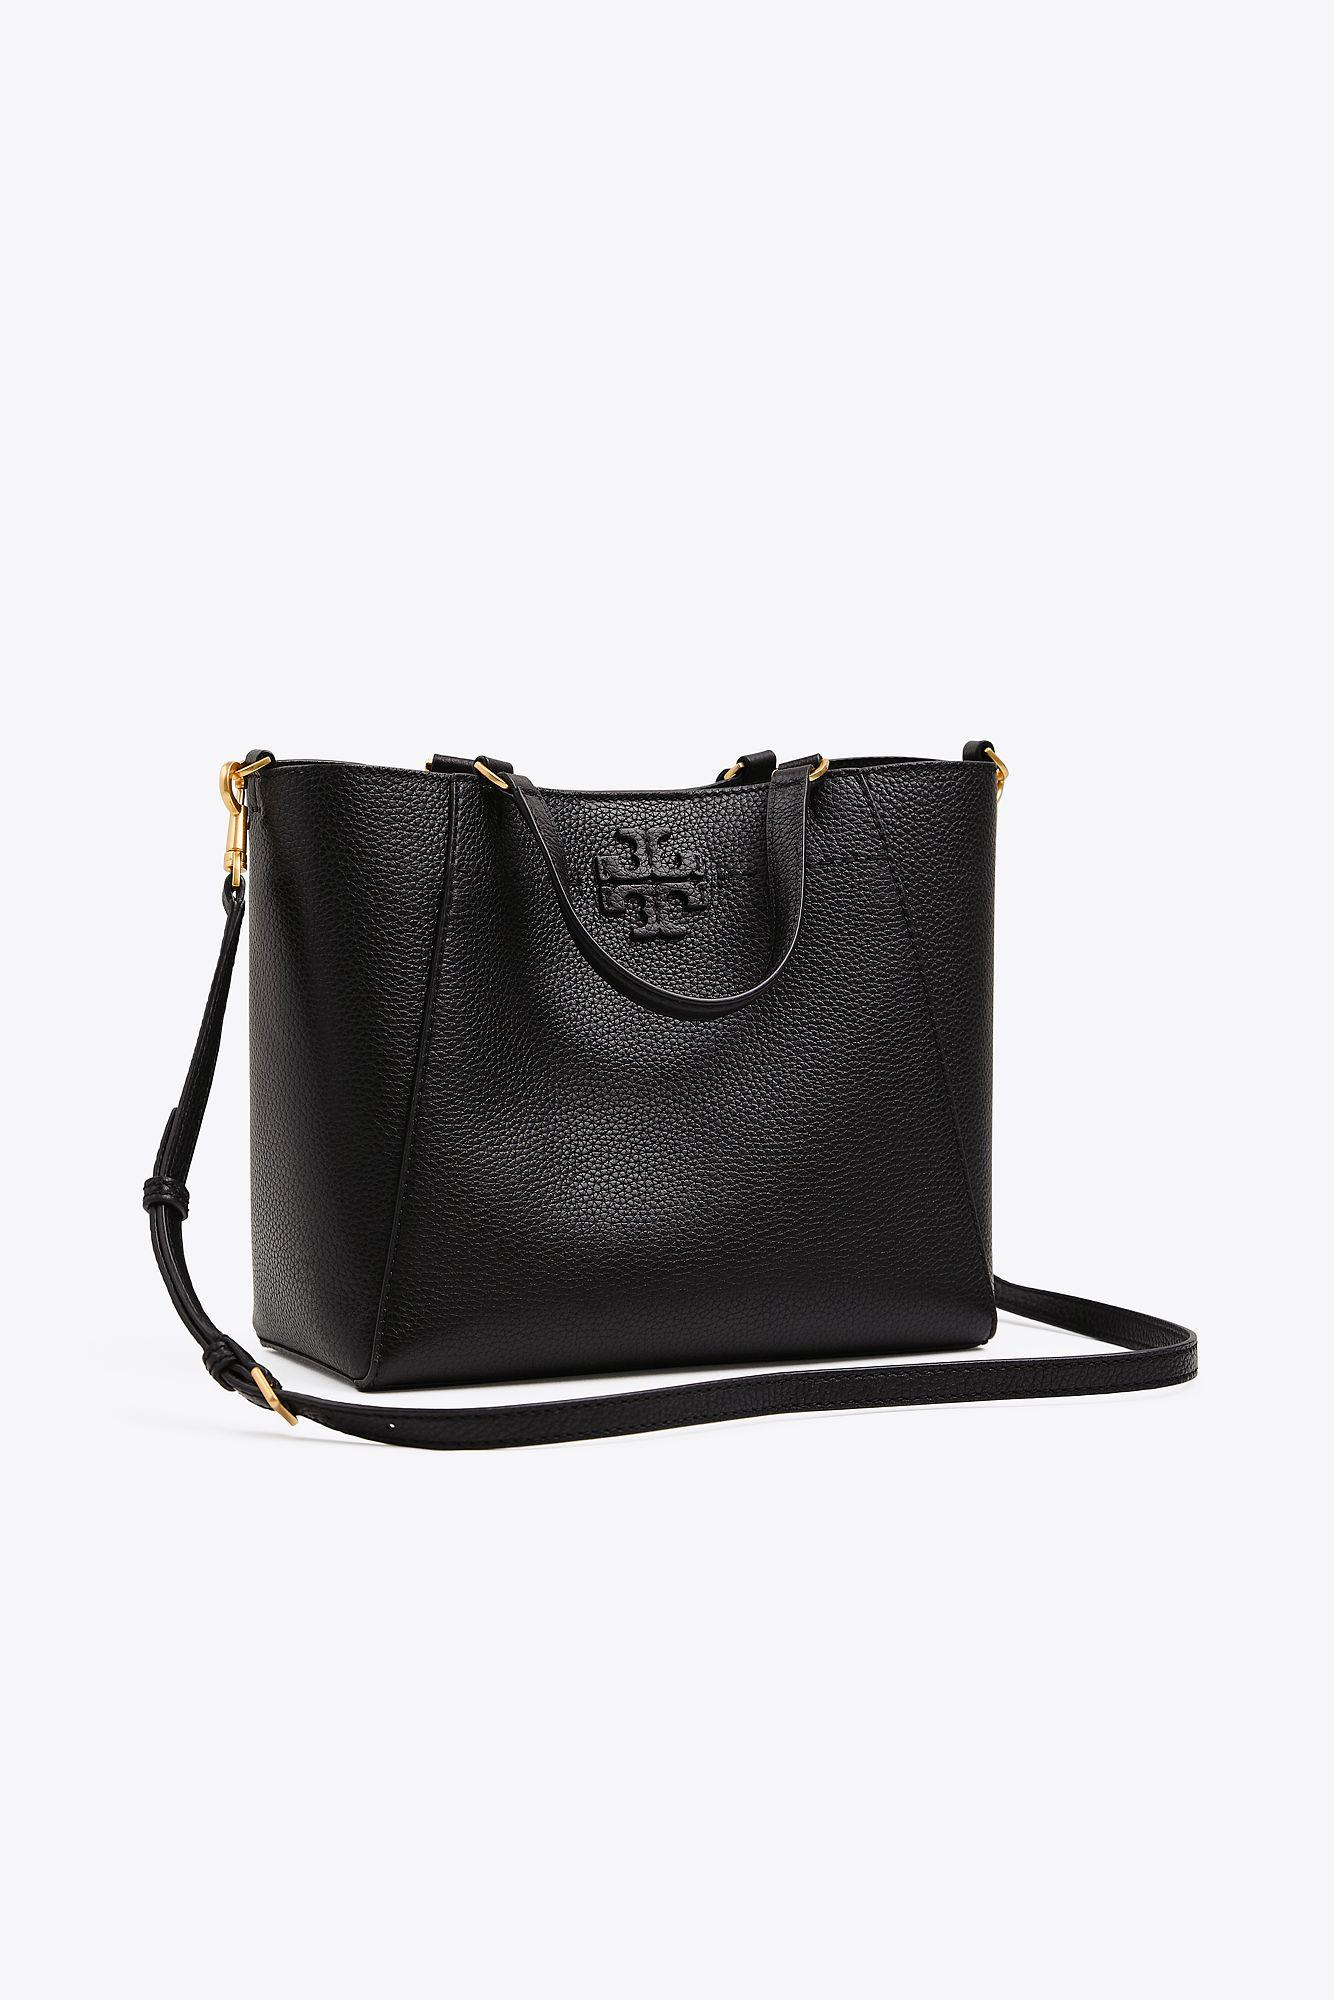 81e3928865f7 Tory Burch. Women s Black Mcgraw Small Carryall ...